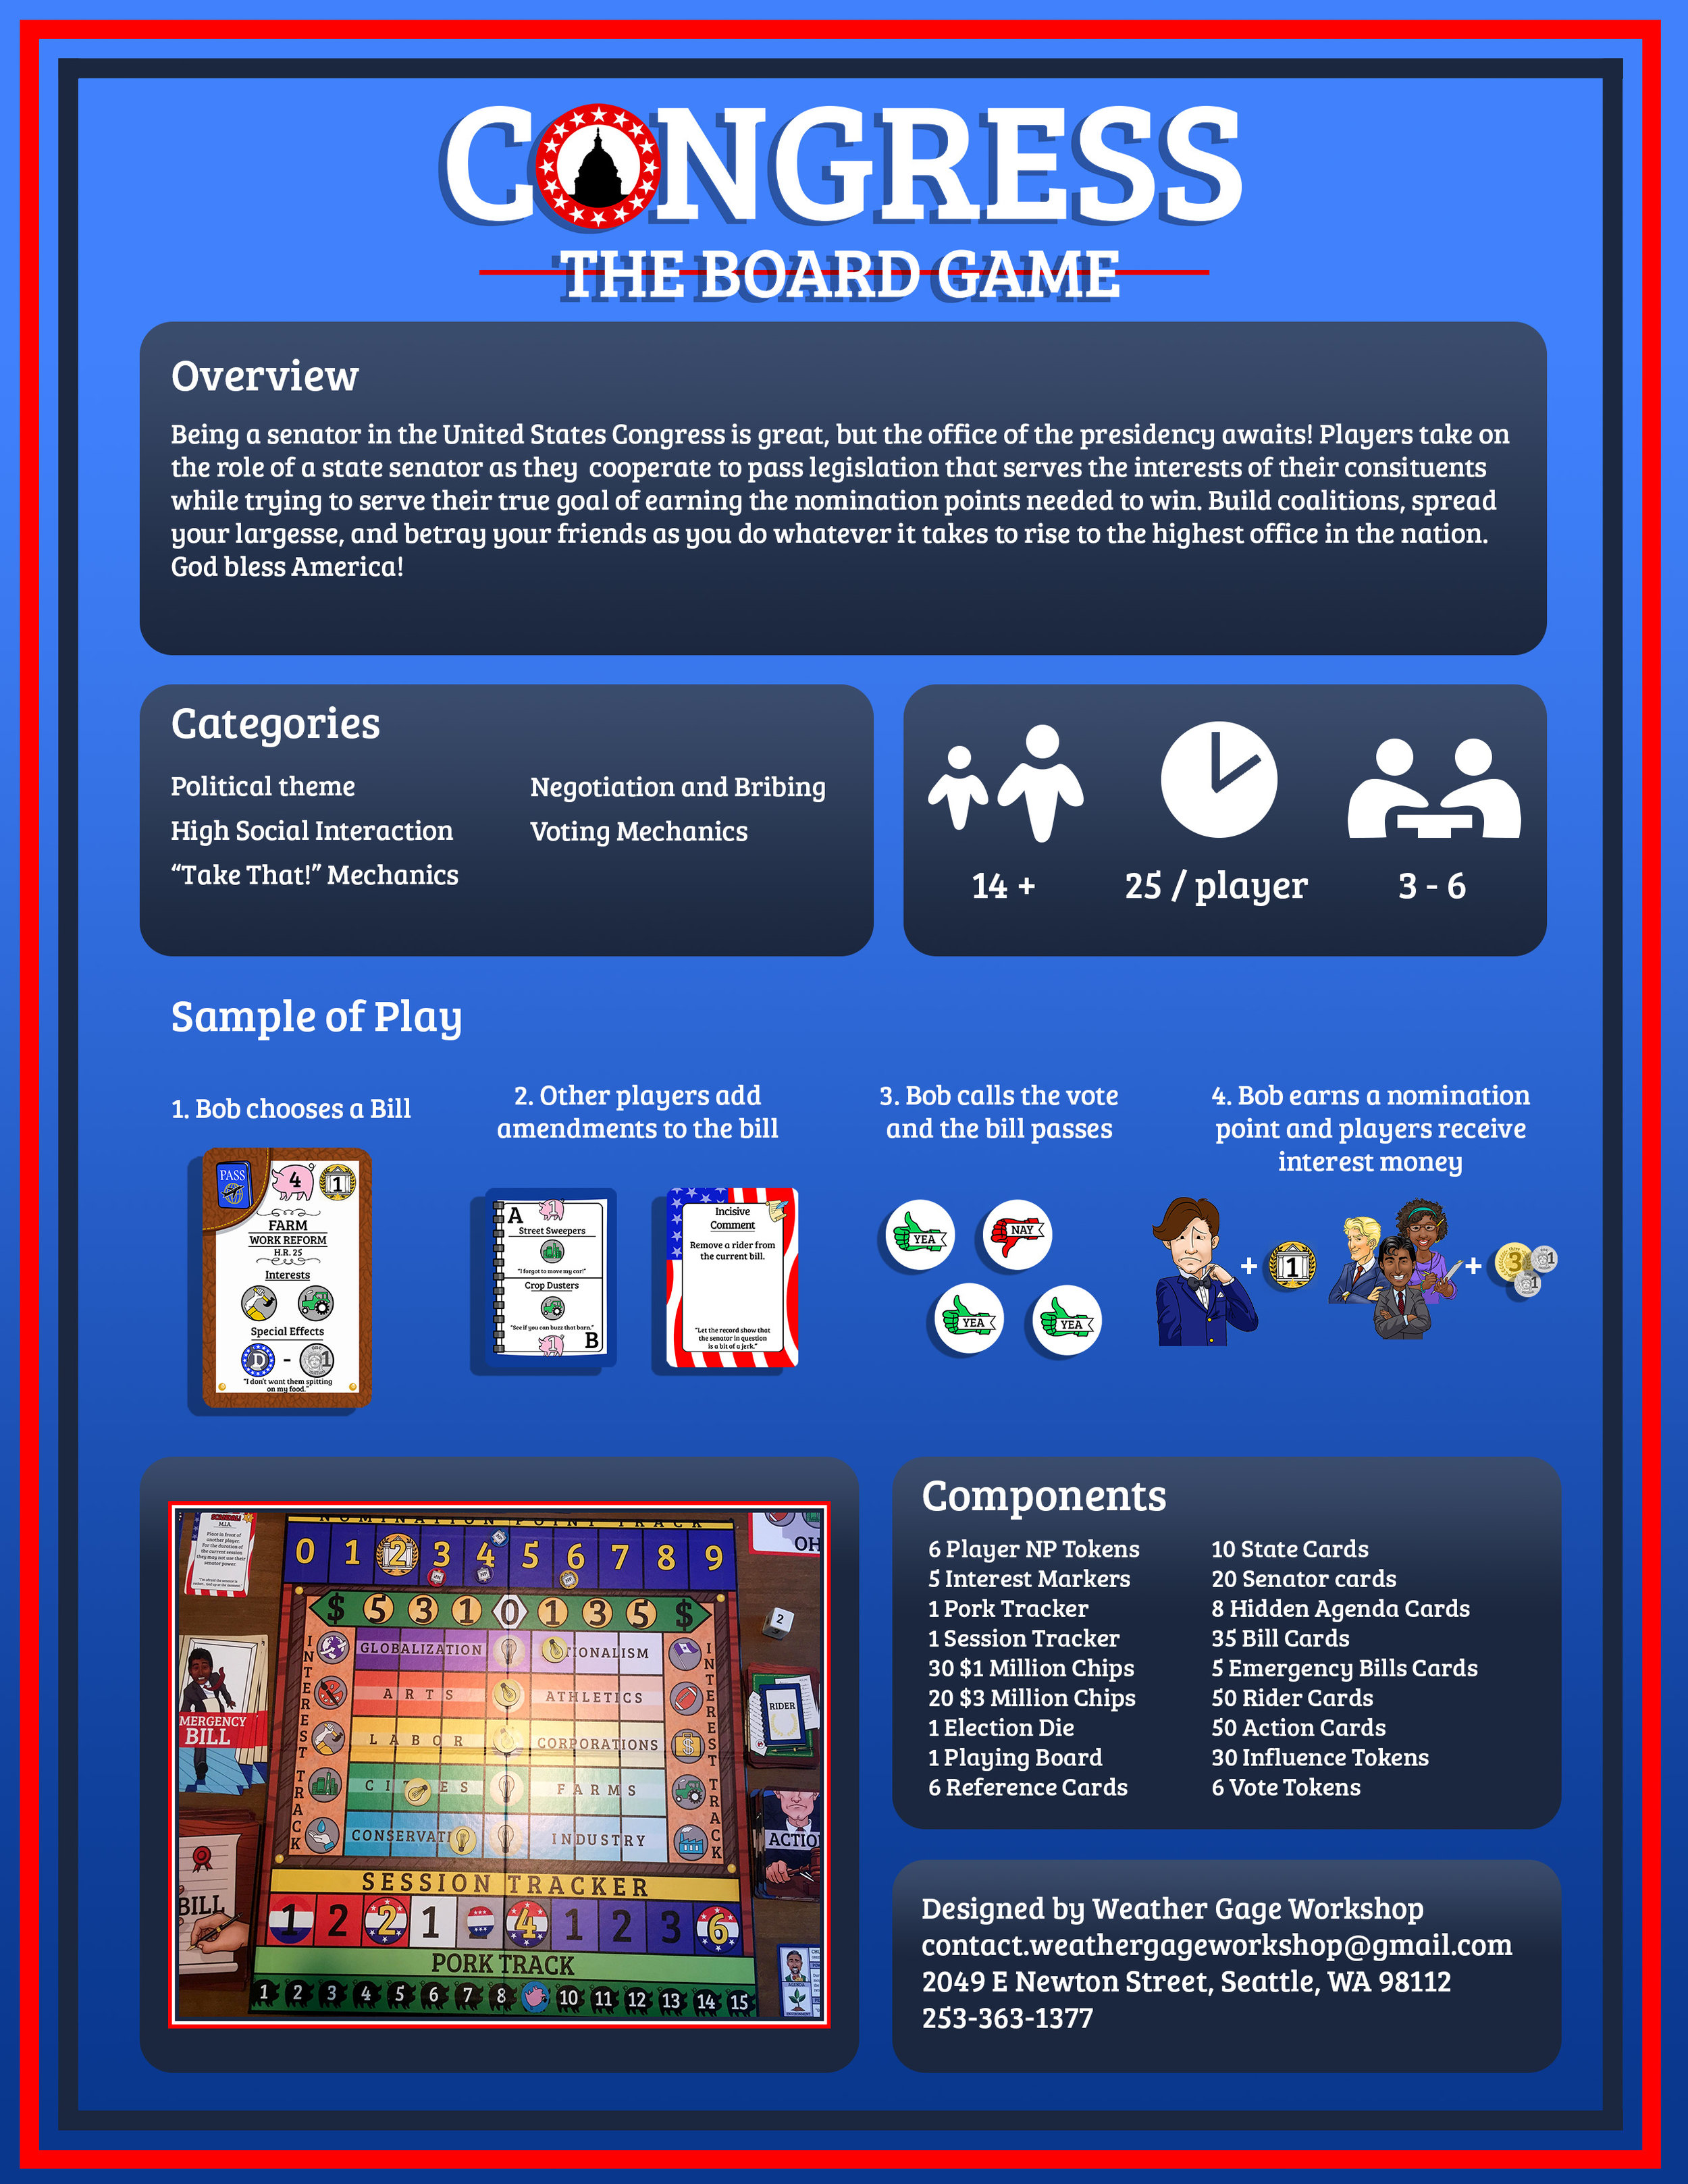 Congress The Board Game - Sell Sheet.jpg